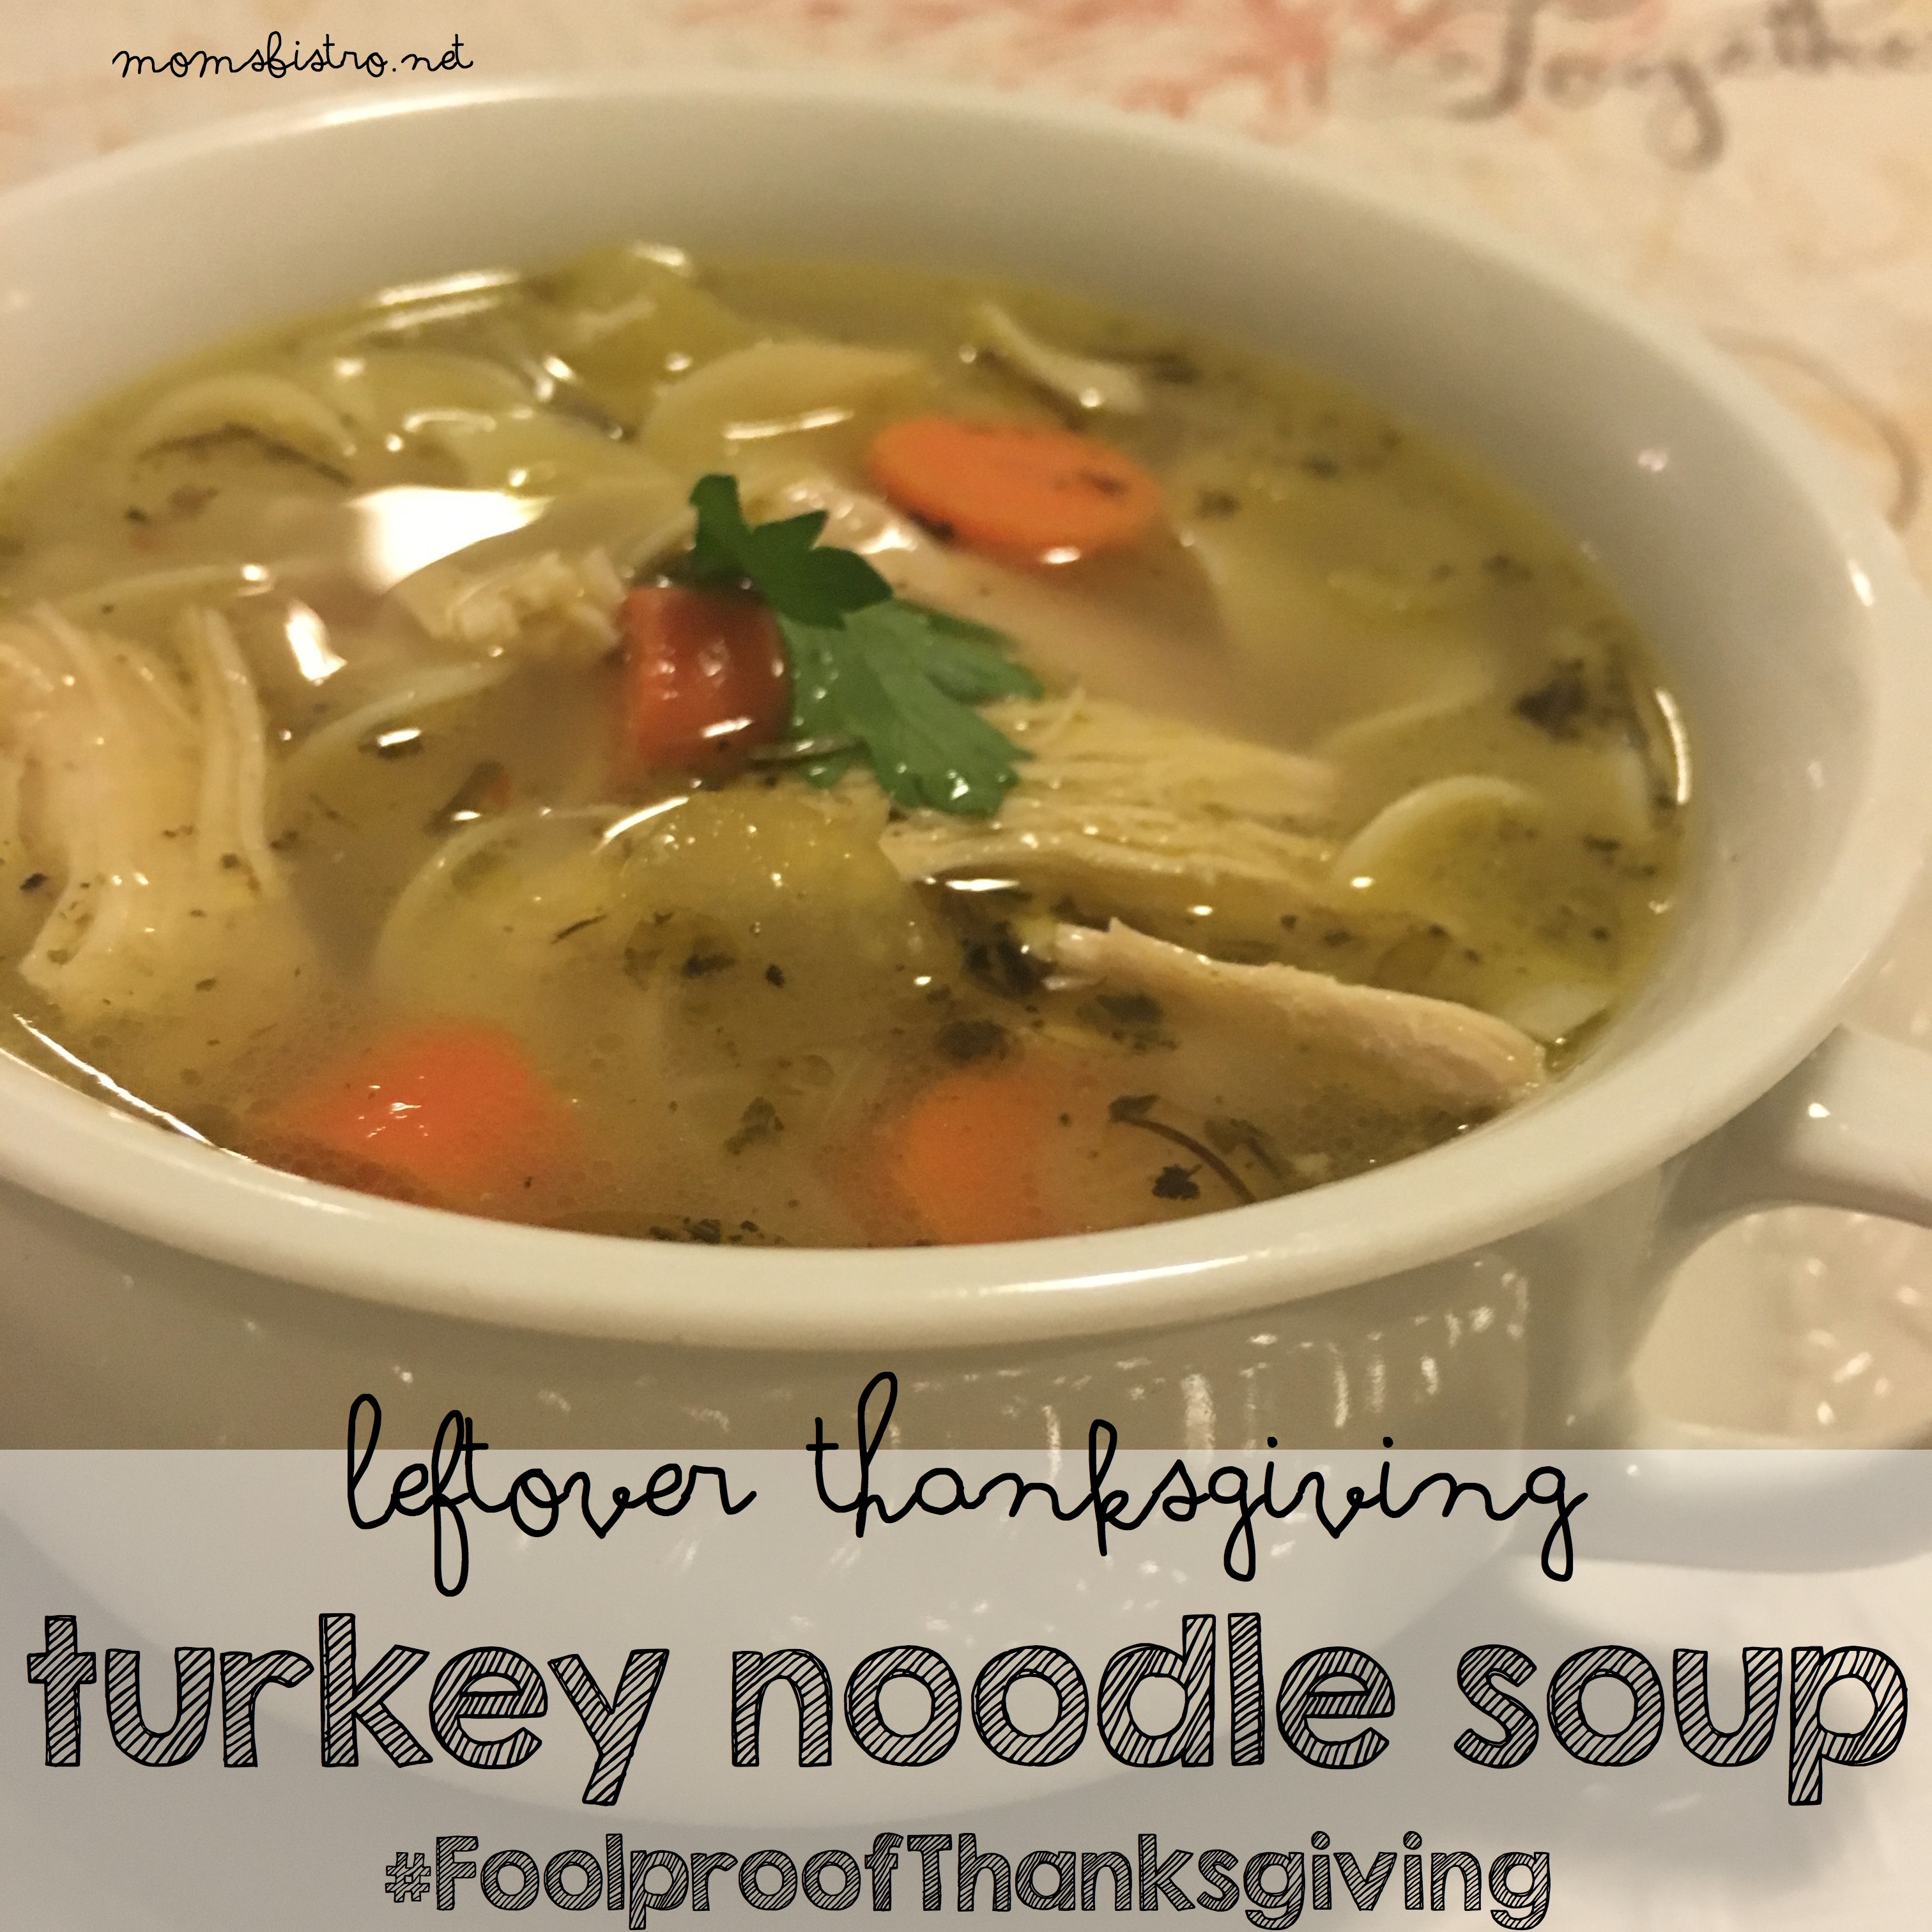 Don't Forget!  Save The Turkey and Finish Up Your Thanksgiving Leftover By Making This 30-Minute Turkey Noodle Soup with Homemade Turkey Broth | Leftover Thanksgiving Turkey Noodle Soup and Homemade Turkey Broth Recipe | #FoolproofThanksgiving